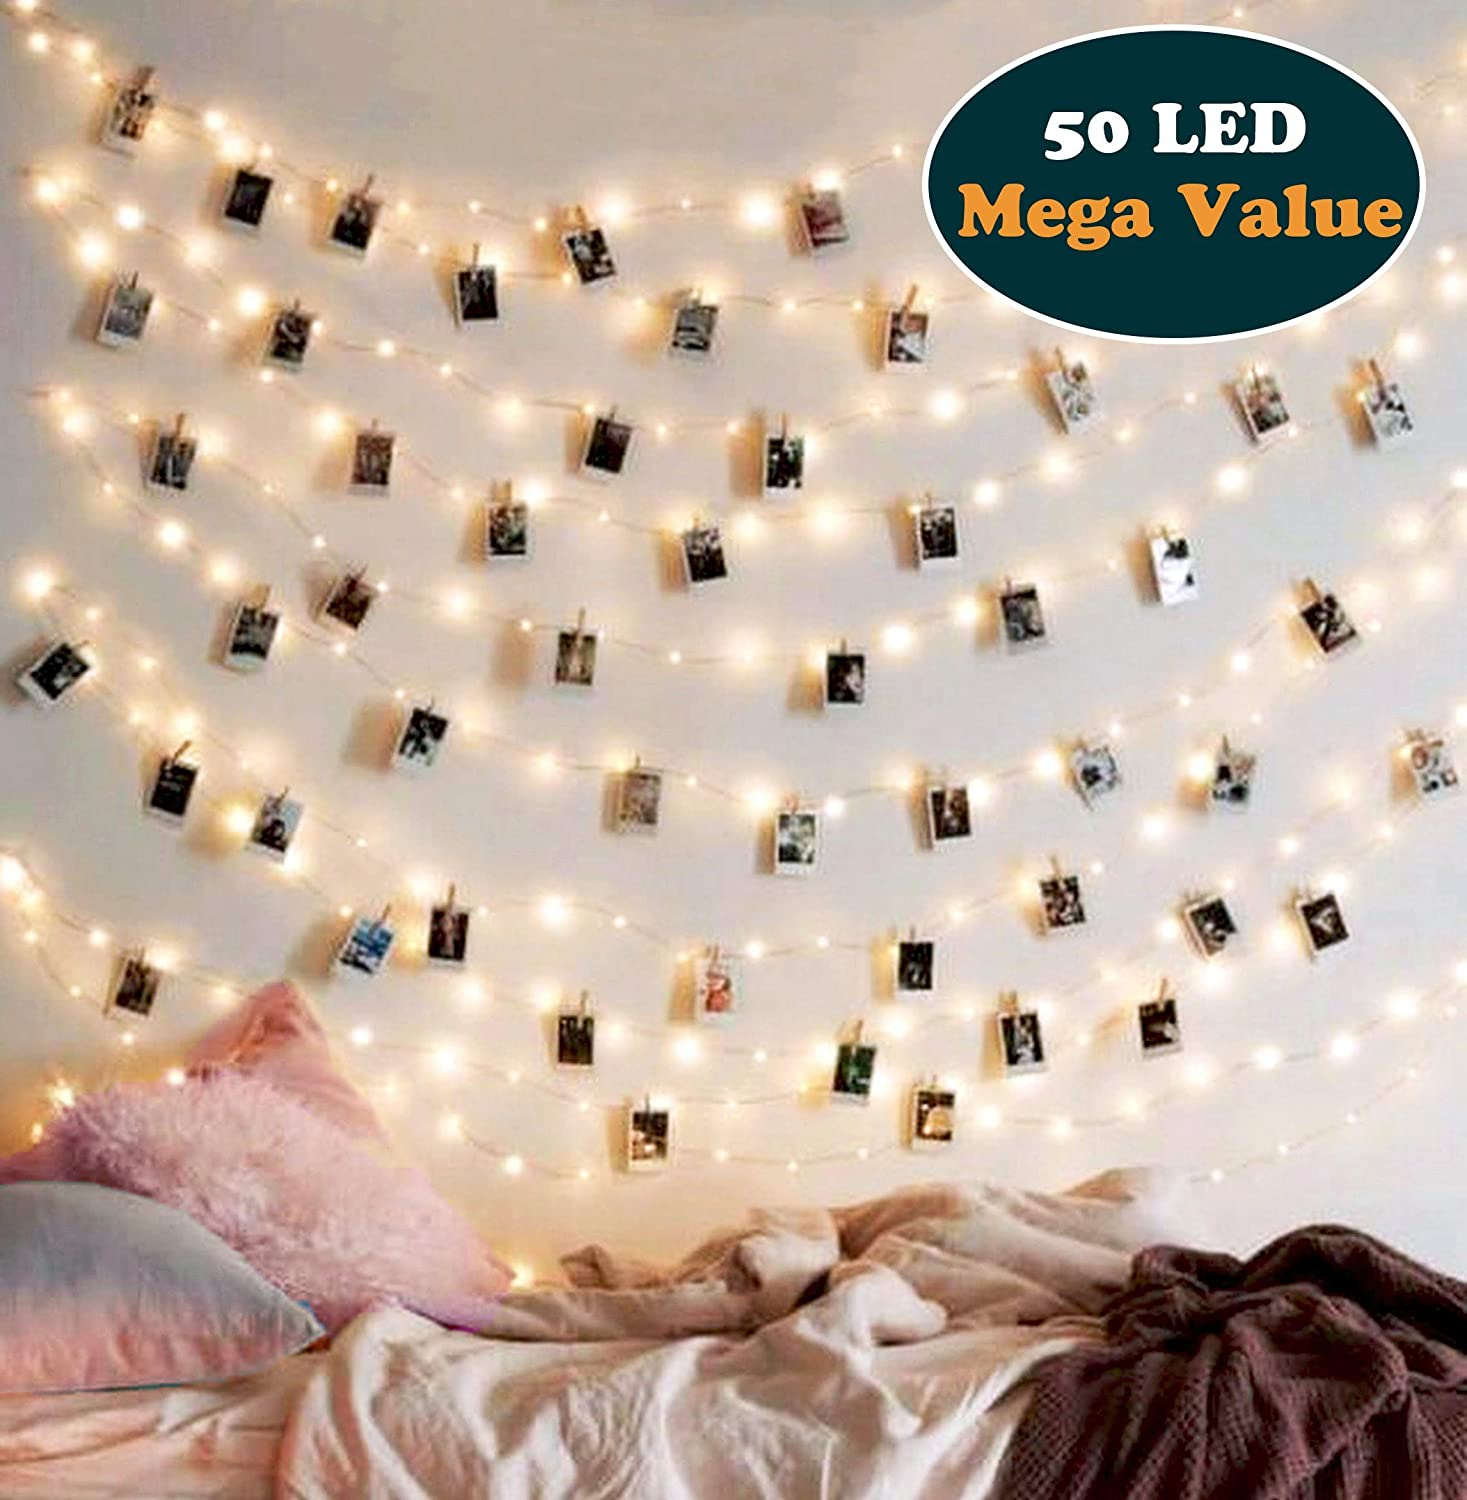 buy popular b62a5 53105 EZDC 50 LED Photo Clip String Lights, Bedroom Fairy Lights with Clips for  Bedroom Decoration to Hang Card, Polaroids & Pictures